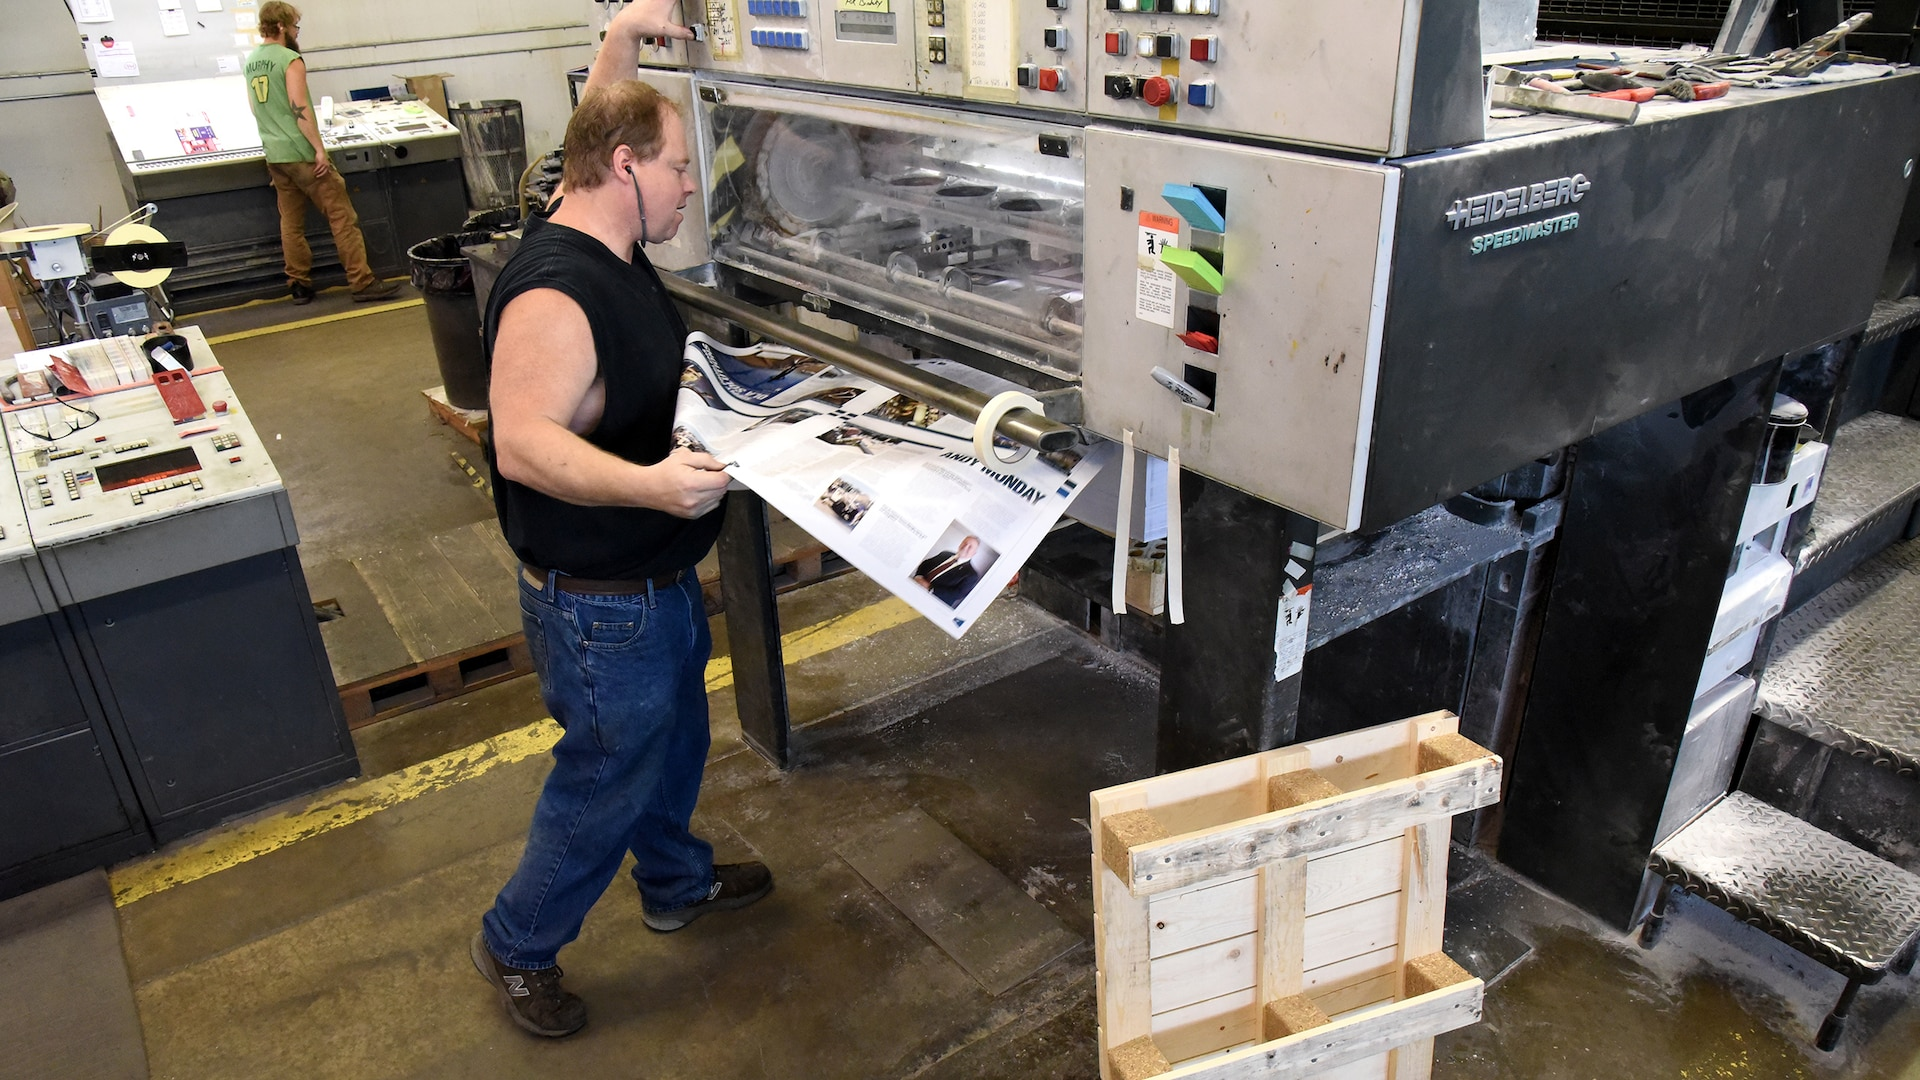 Press Operator Everett E. (Skip) Craig Jr. of KB Offset Printing Inc., in State College, Pennsylvania, pulls a page off the press to randomly check print quality of DLA's Loglines magazine Aug. 26. Photo by Phil Prater